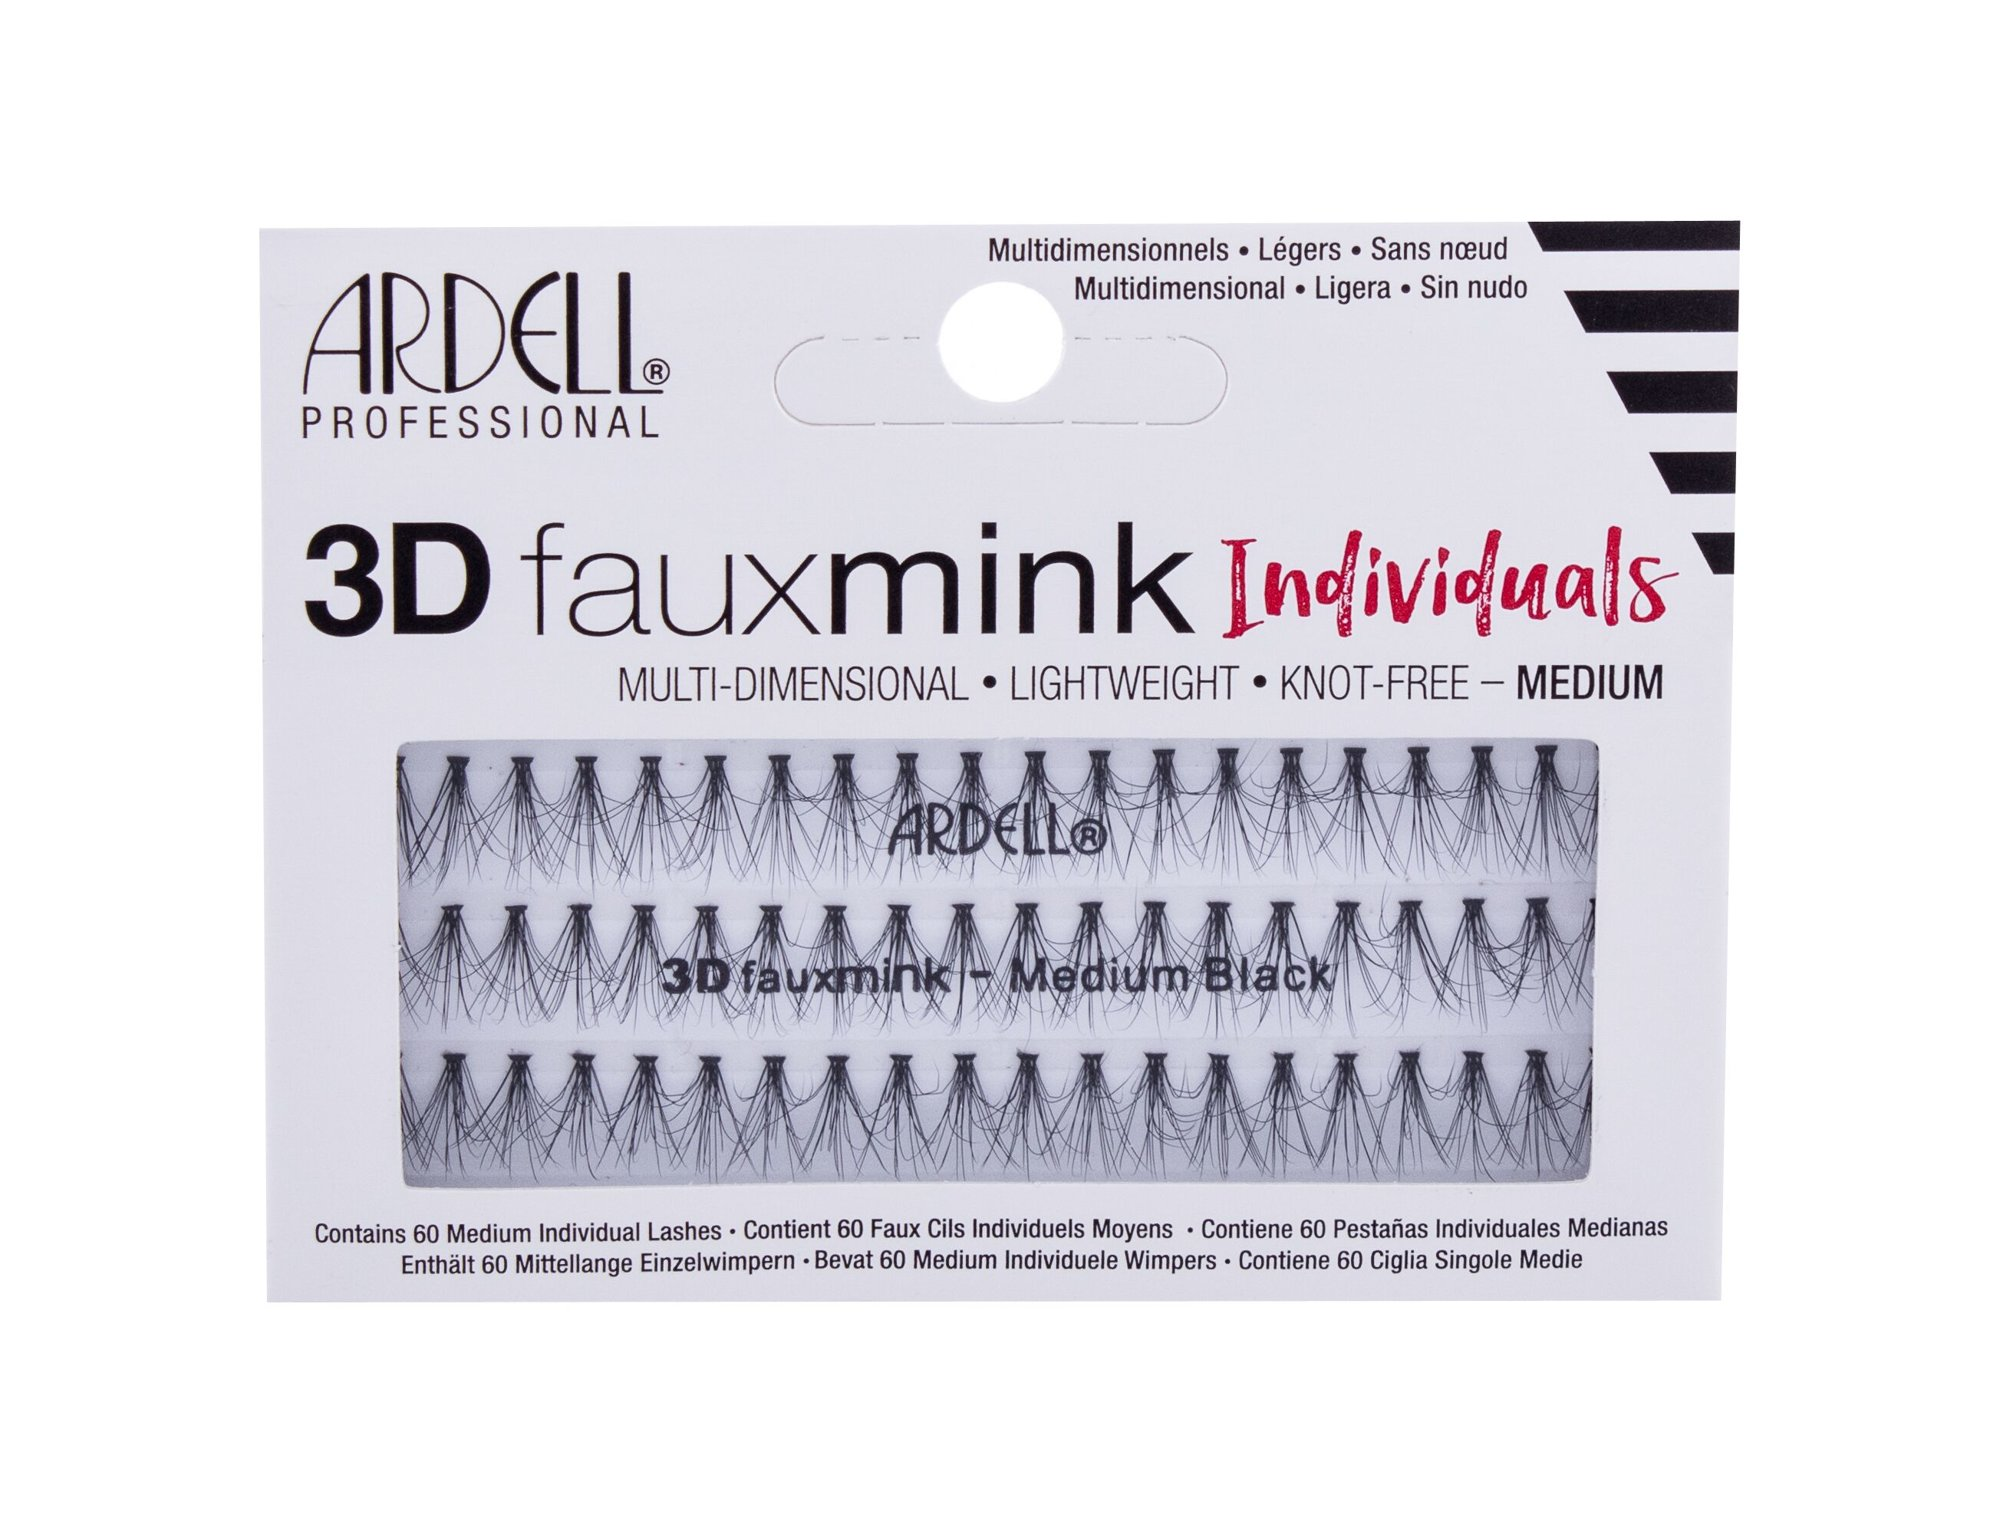 Ardell 3D Faux Mink Individuals (W)